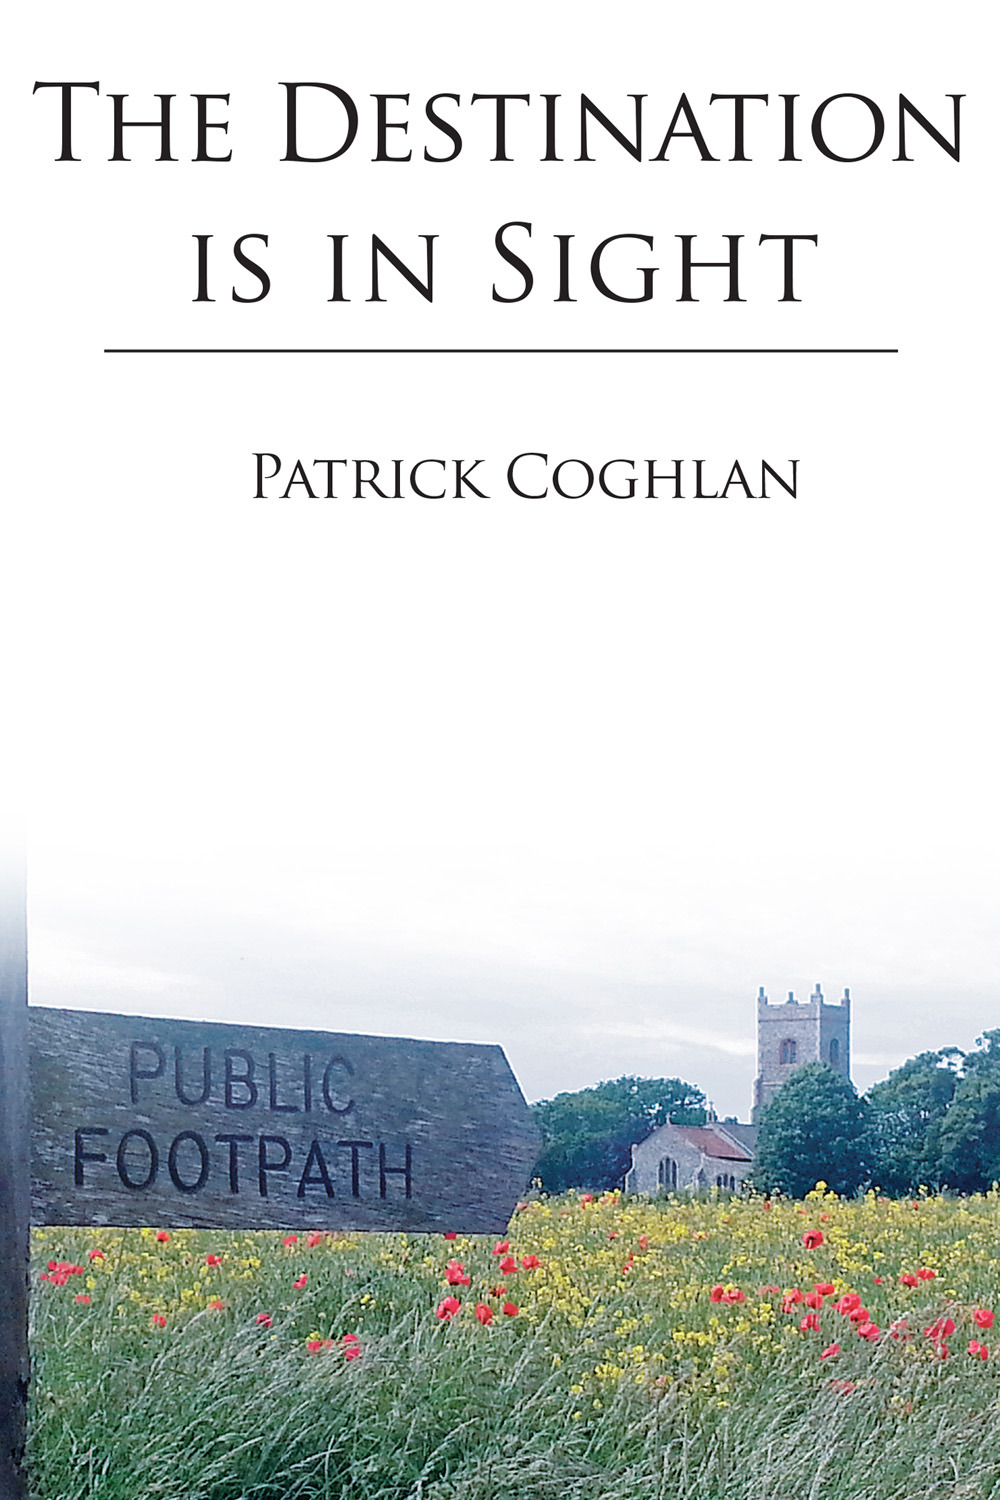 Coghlan, Patrick - The Destination is in Sight, ebook